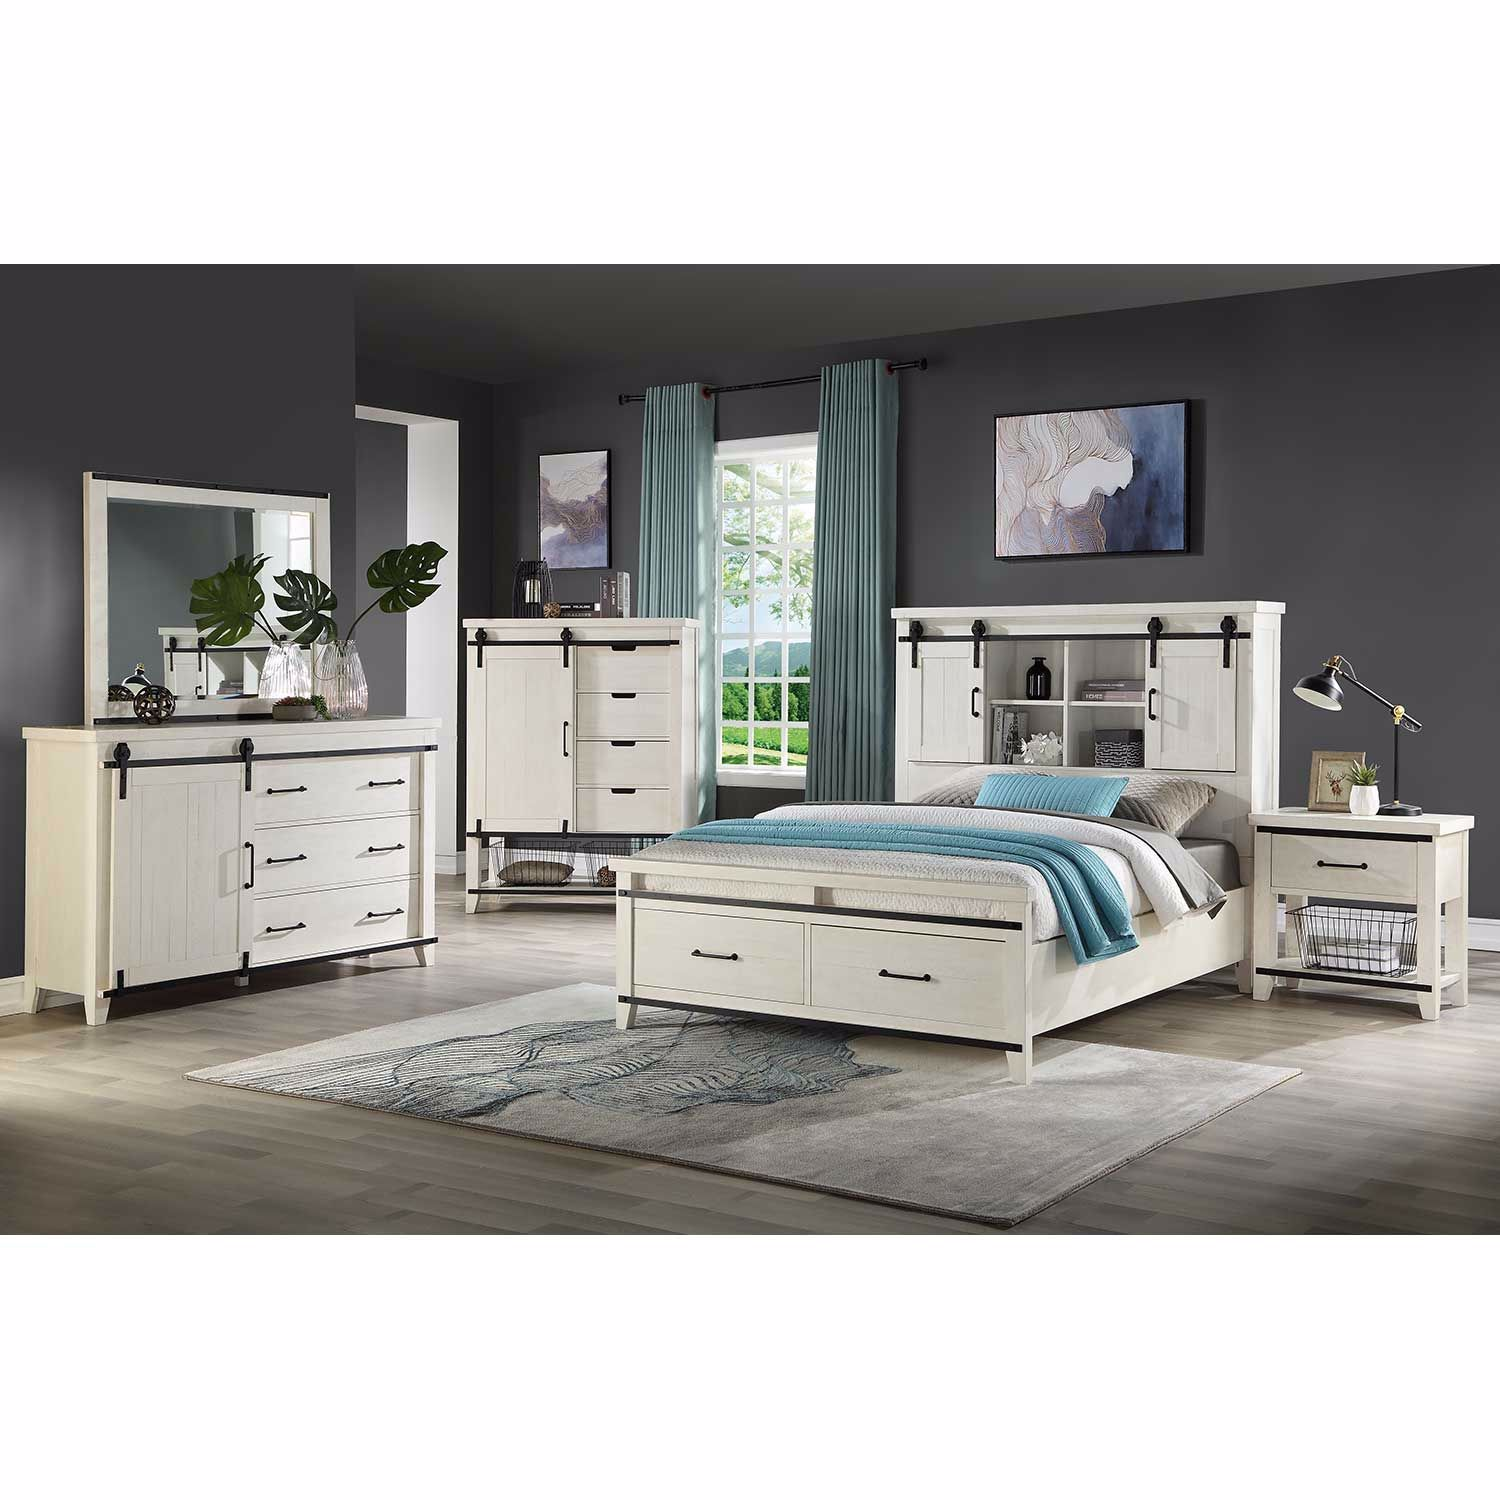 Picture of Dakota King Bookcase Storage Bed